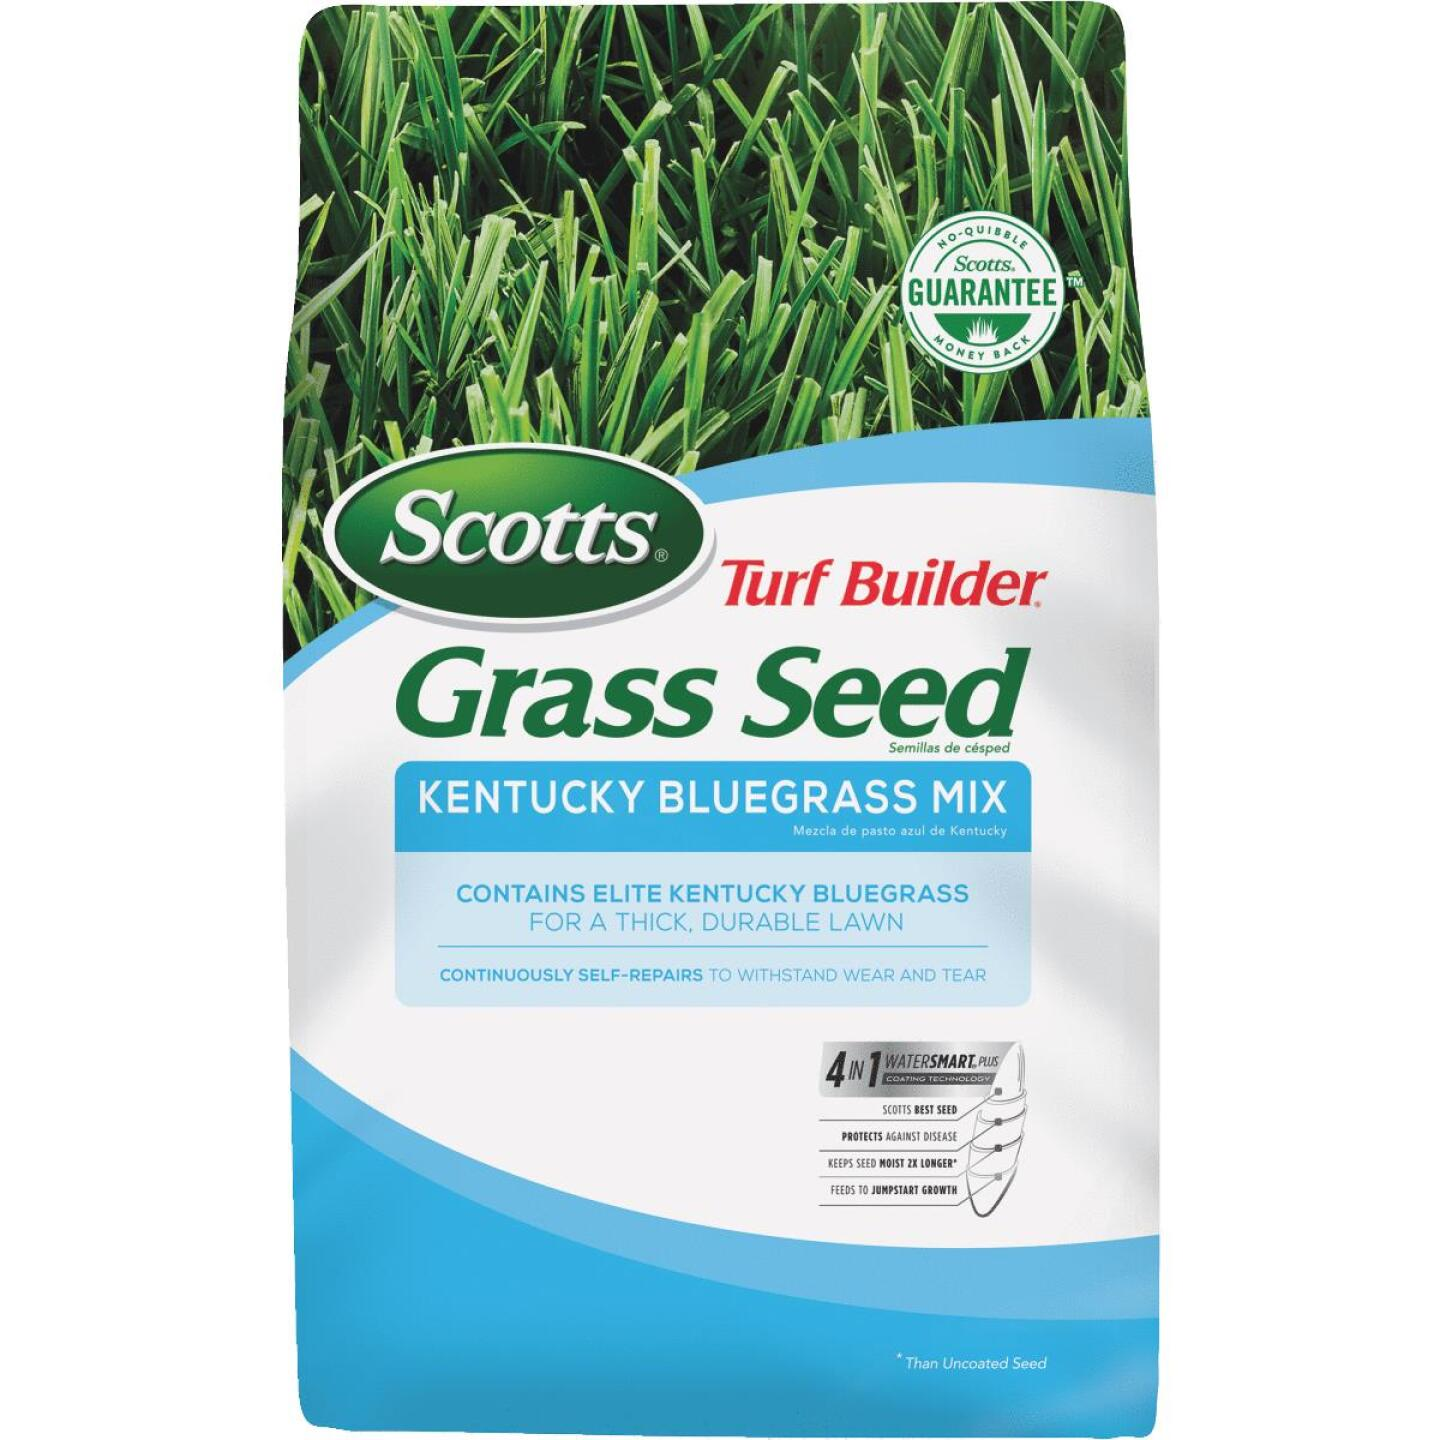 Scotts Turf Builder 7 Lb. Up To 4725 Sq. Ft. Coverage Kentucky Bluegrass Grass Seed Image 1